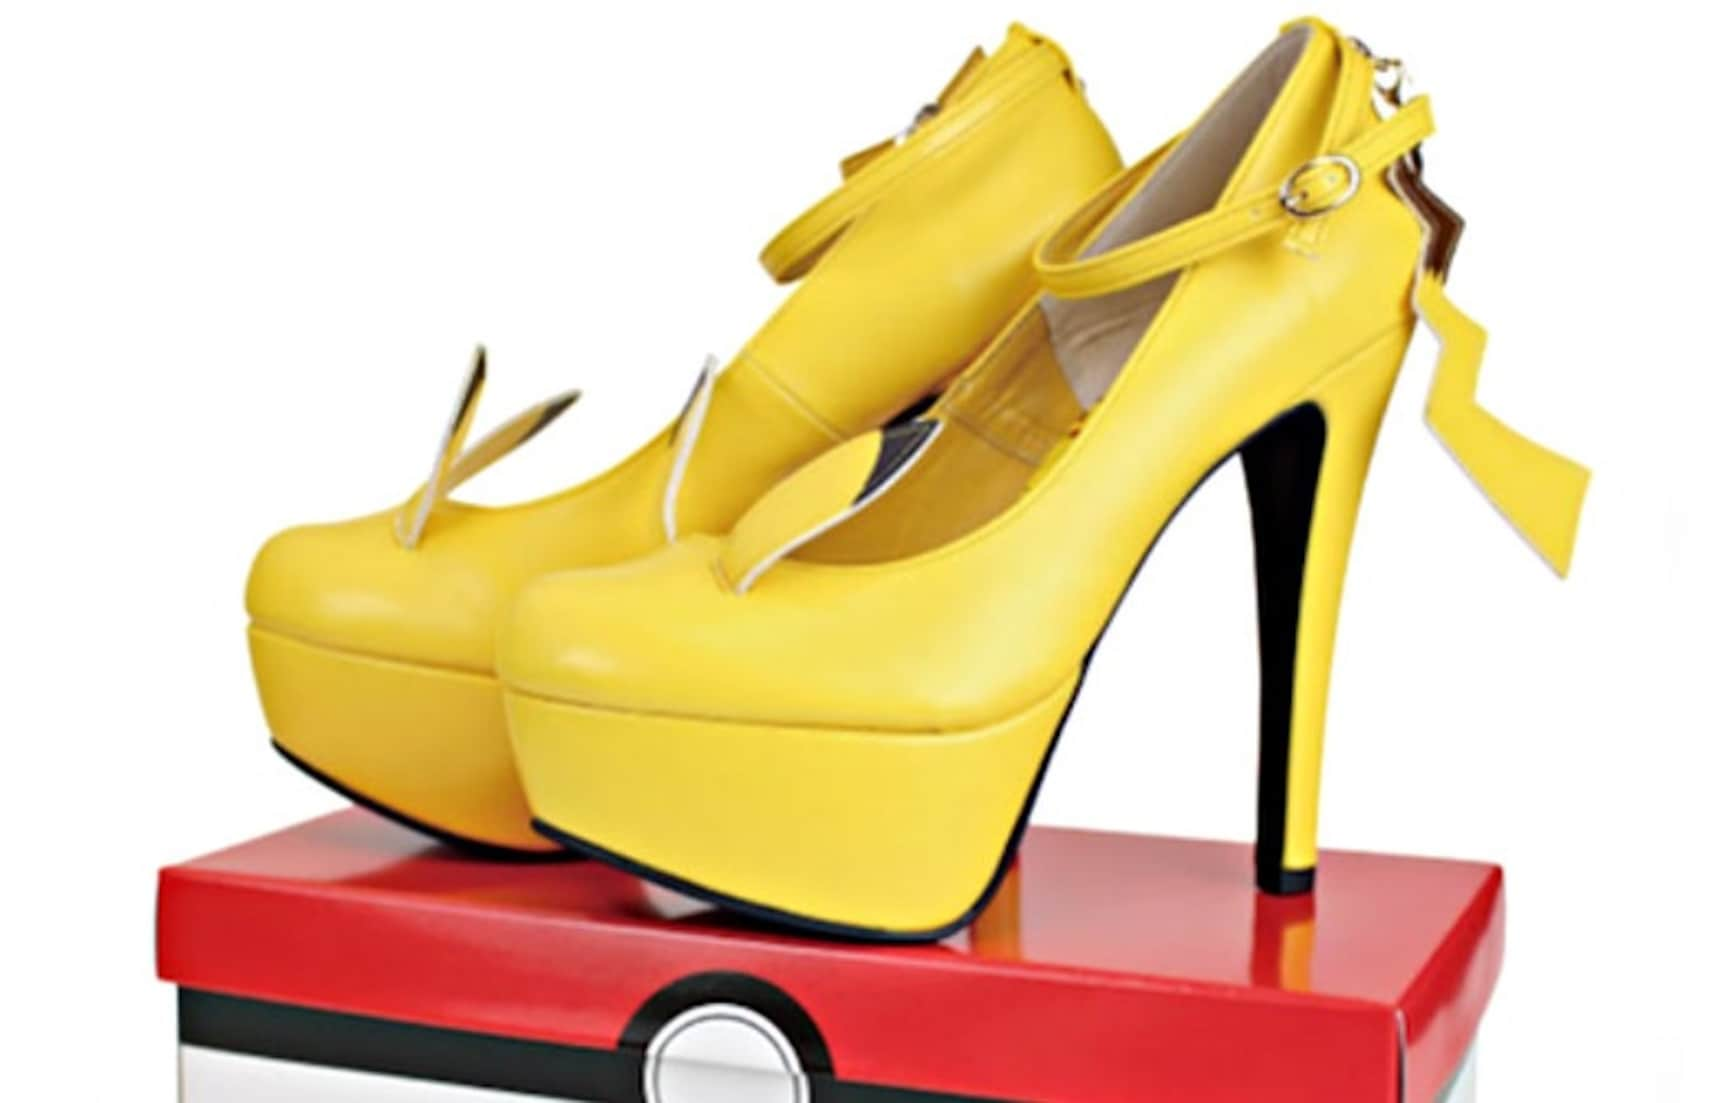 Shock Your Friends with Pikachu Pumps!